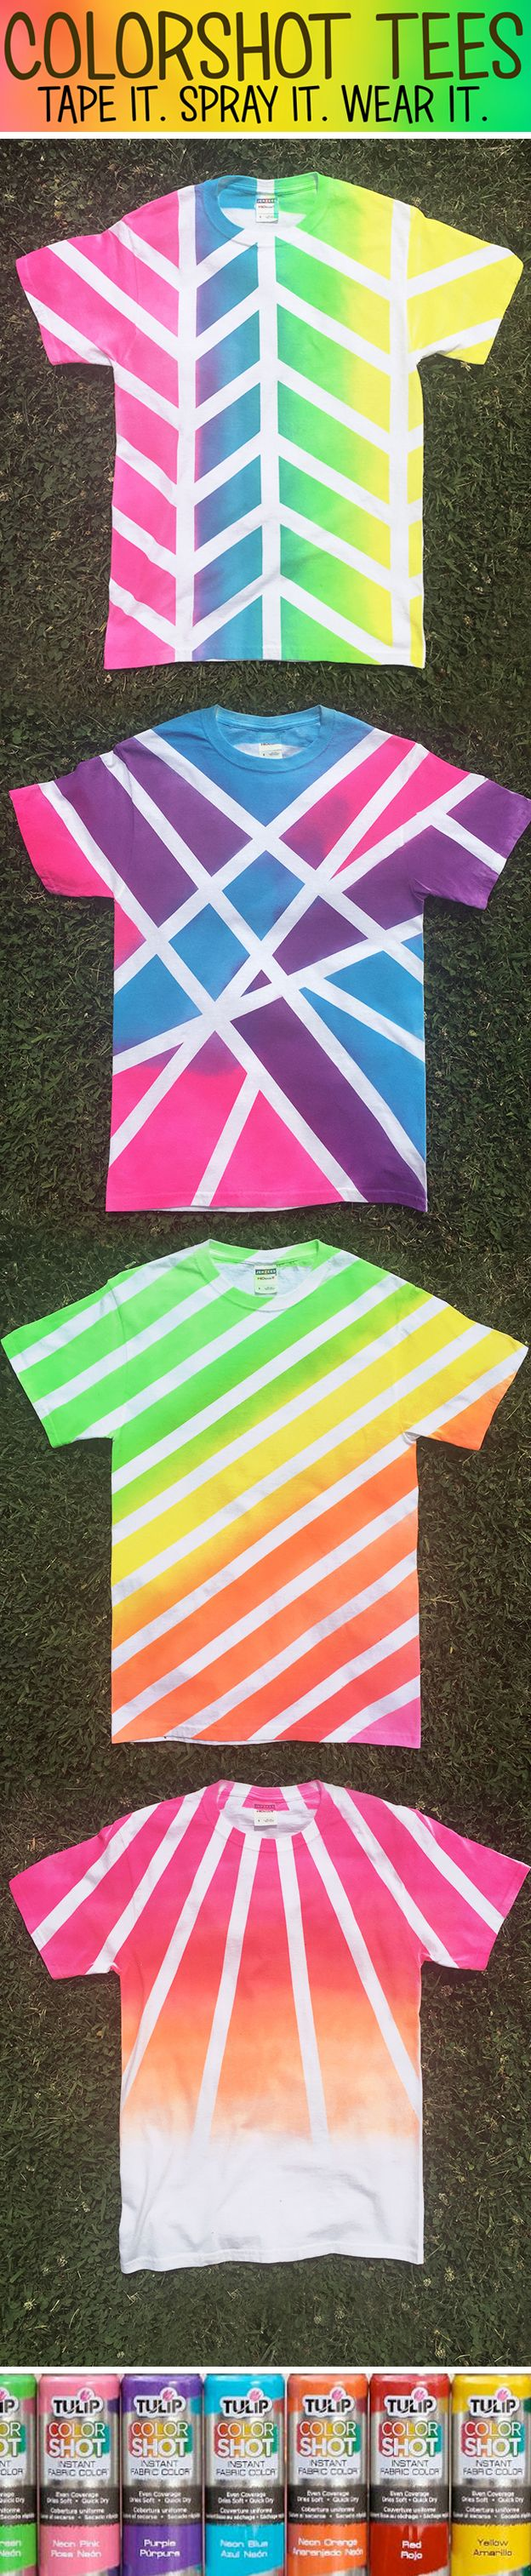 Design t shirt idea - Cool Shirts Made With Tulip Colorshot And Tape